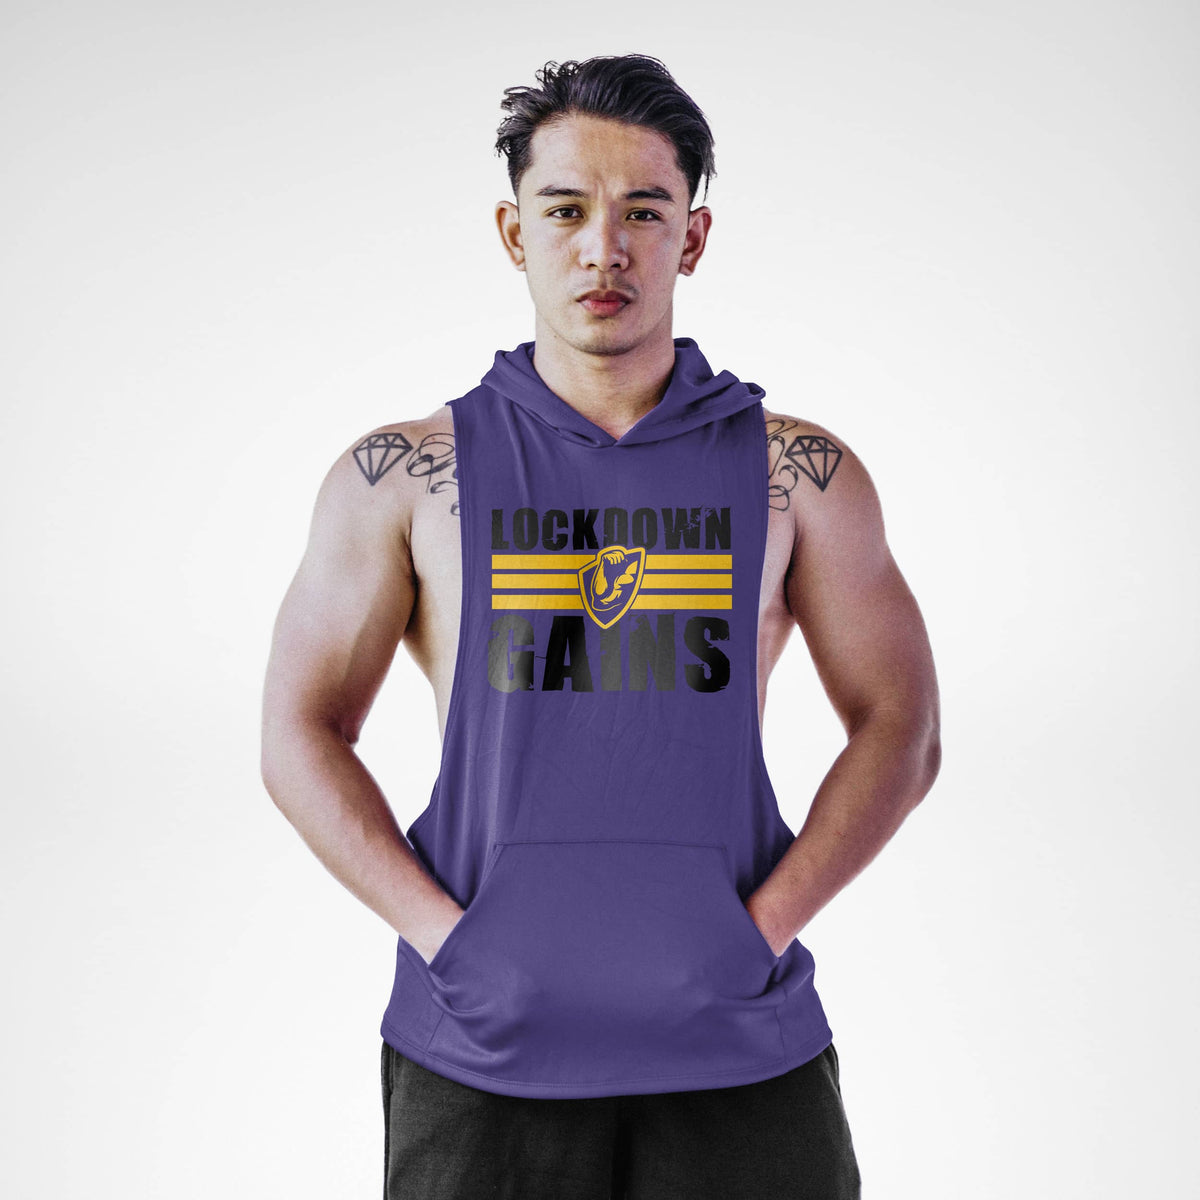 Lōckdown Gains Sleeveless Hoodie